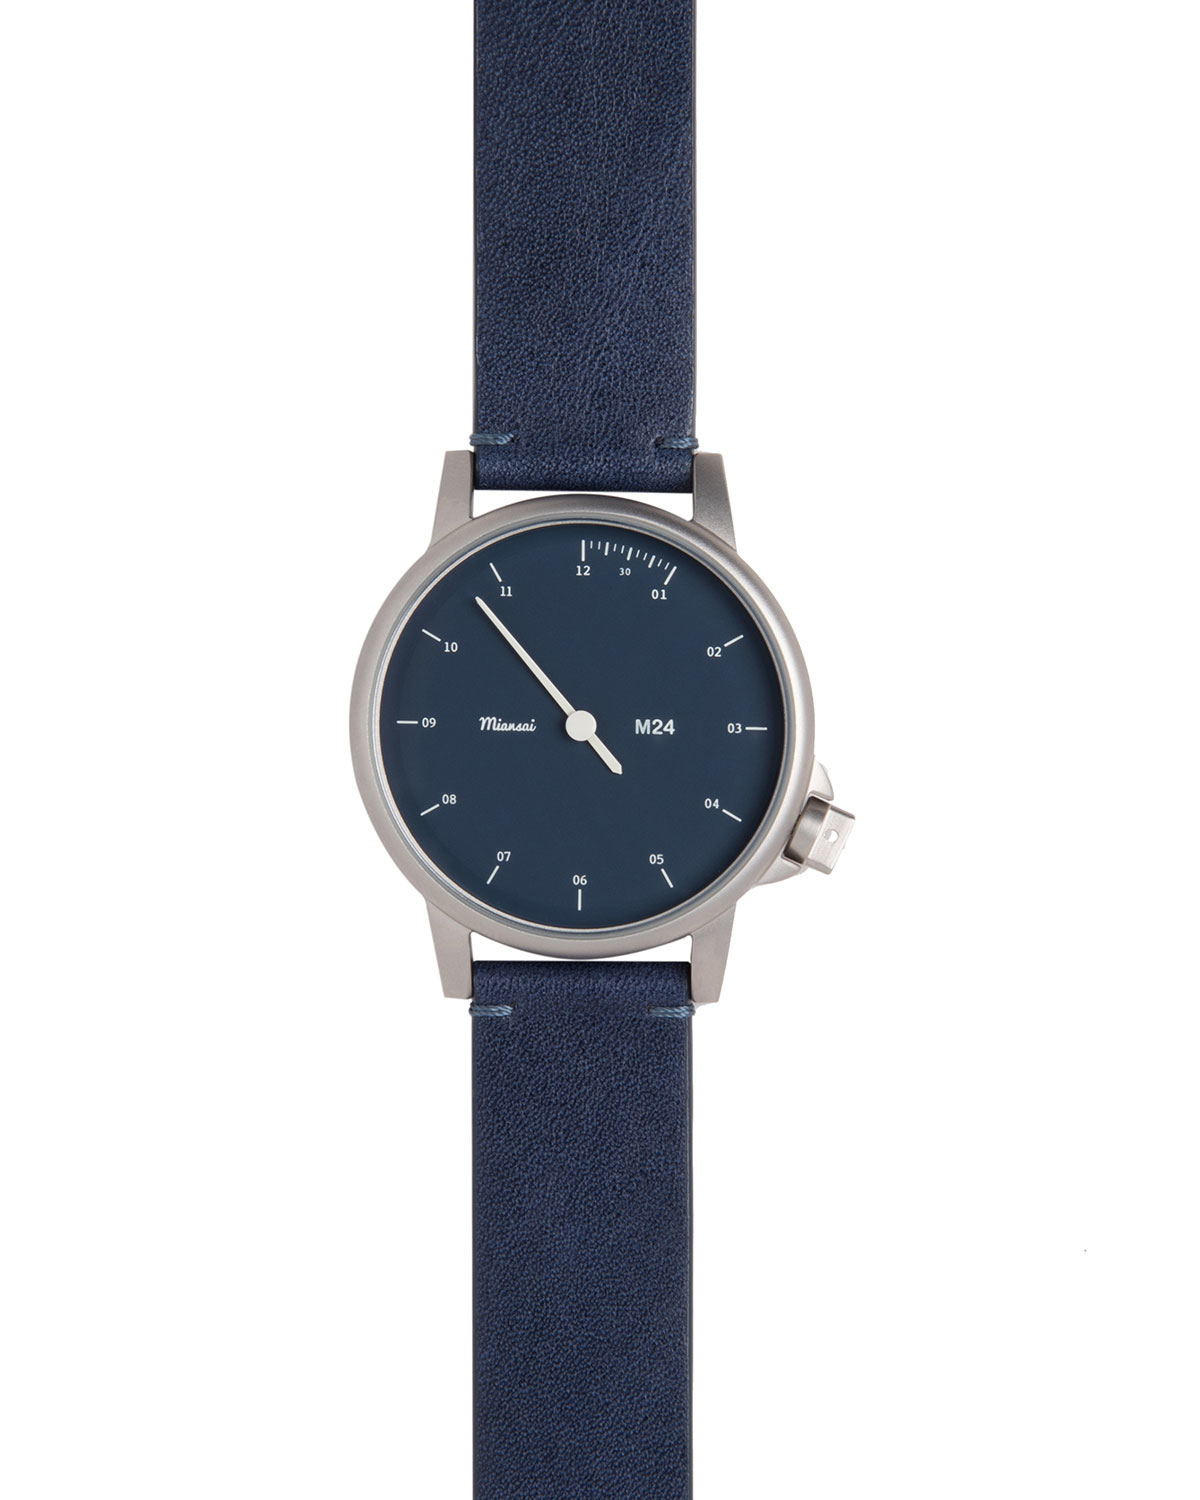 Miansai Stainless Steel Watch With Leather Strap In Blue